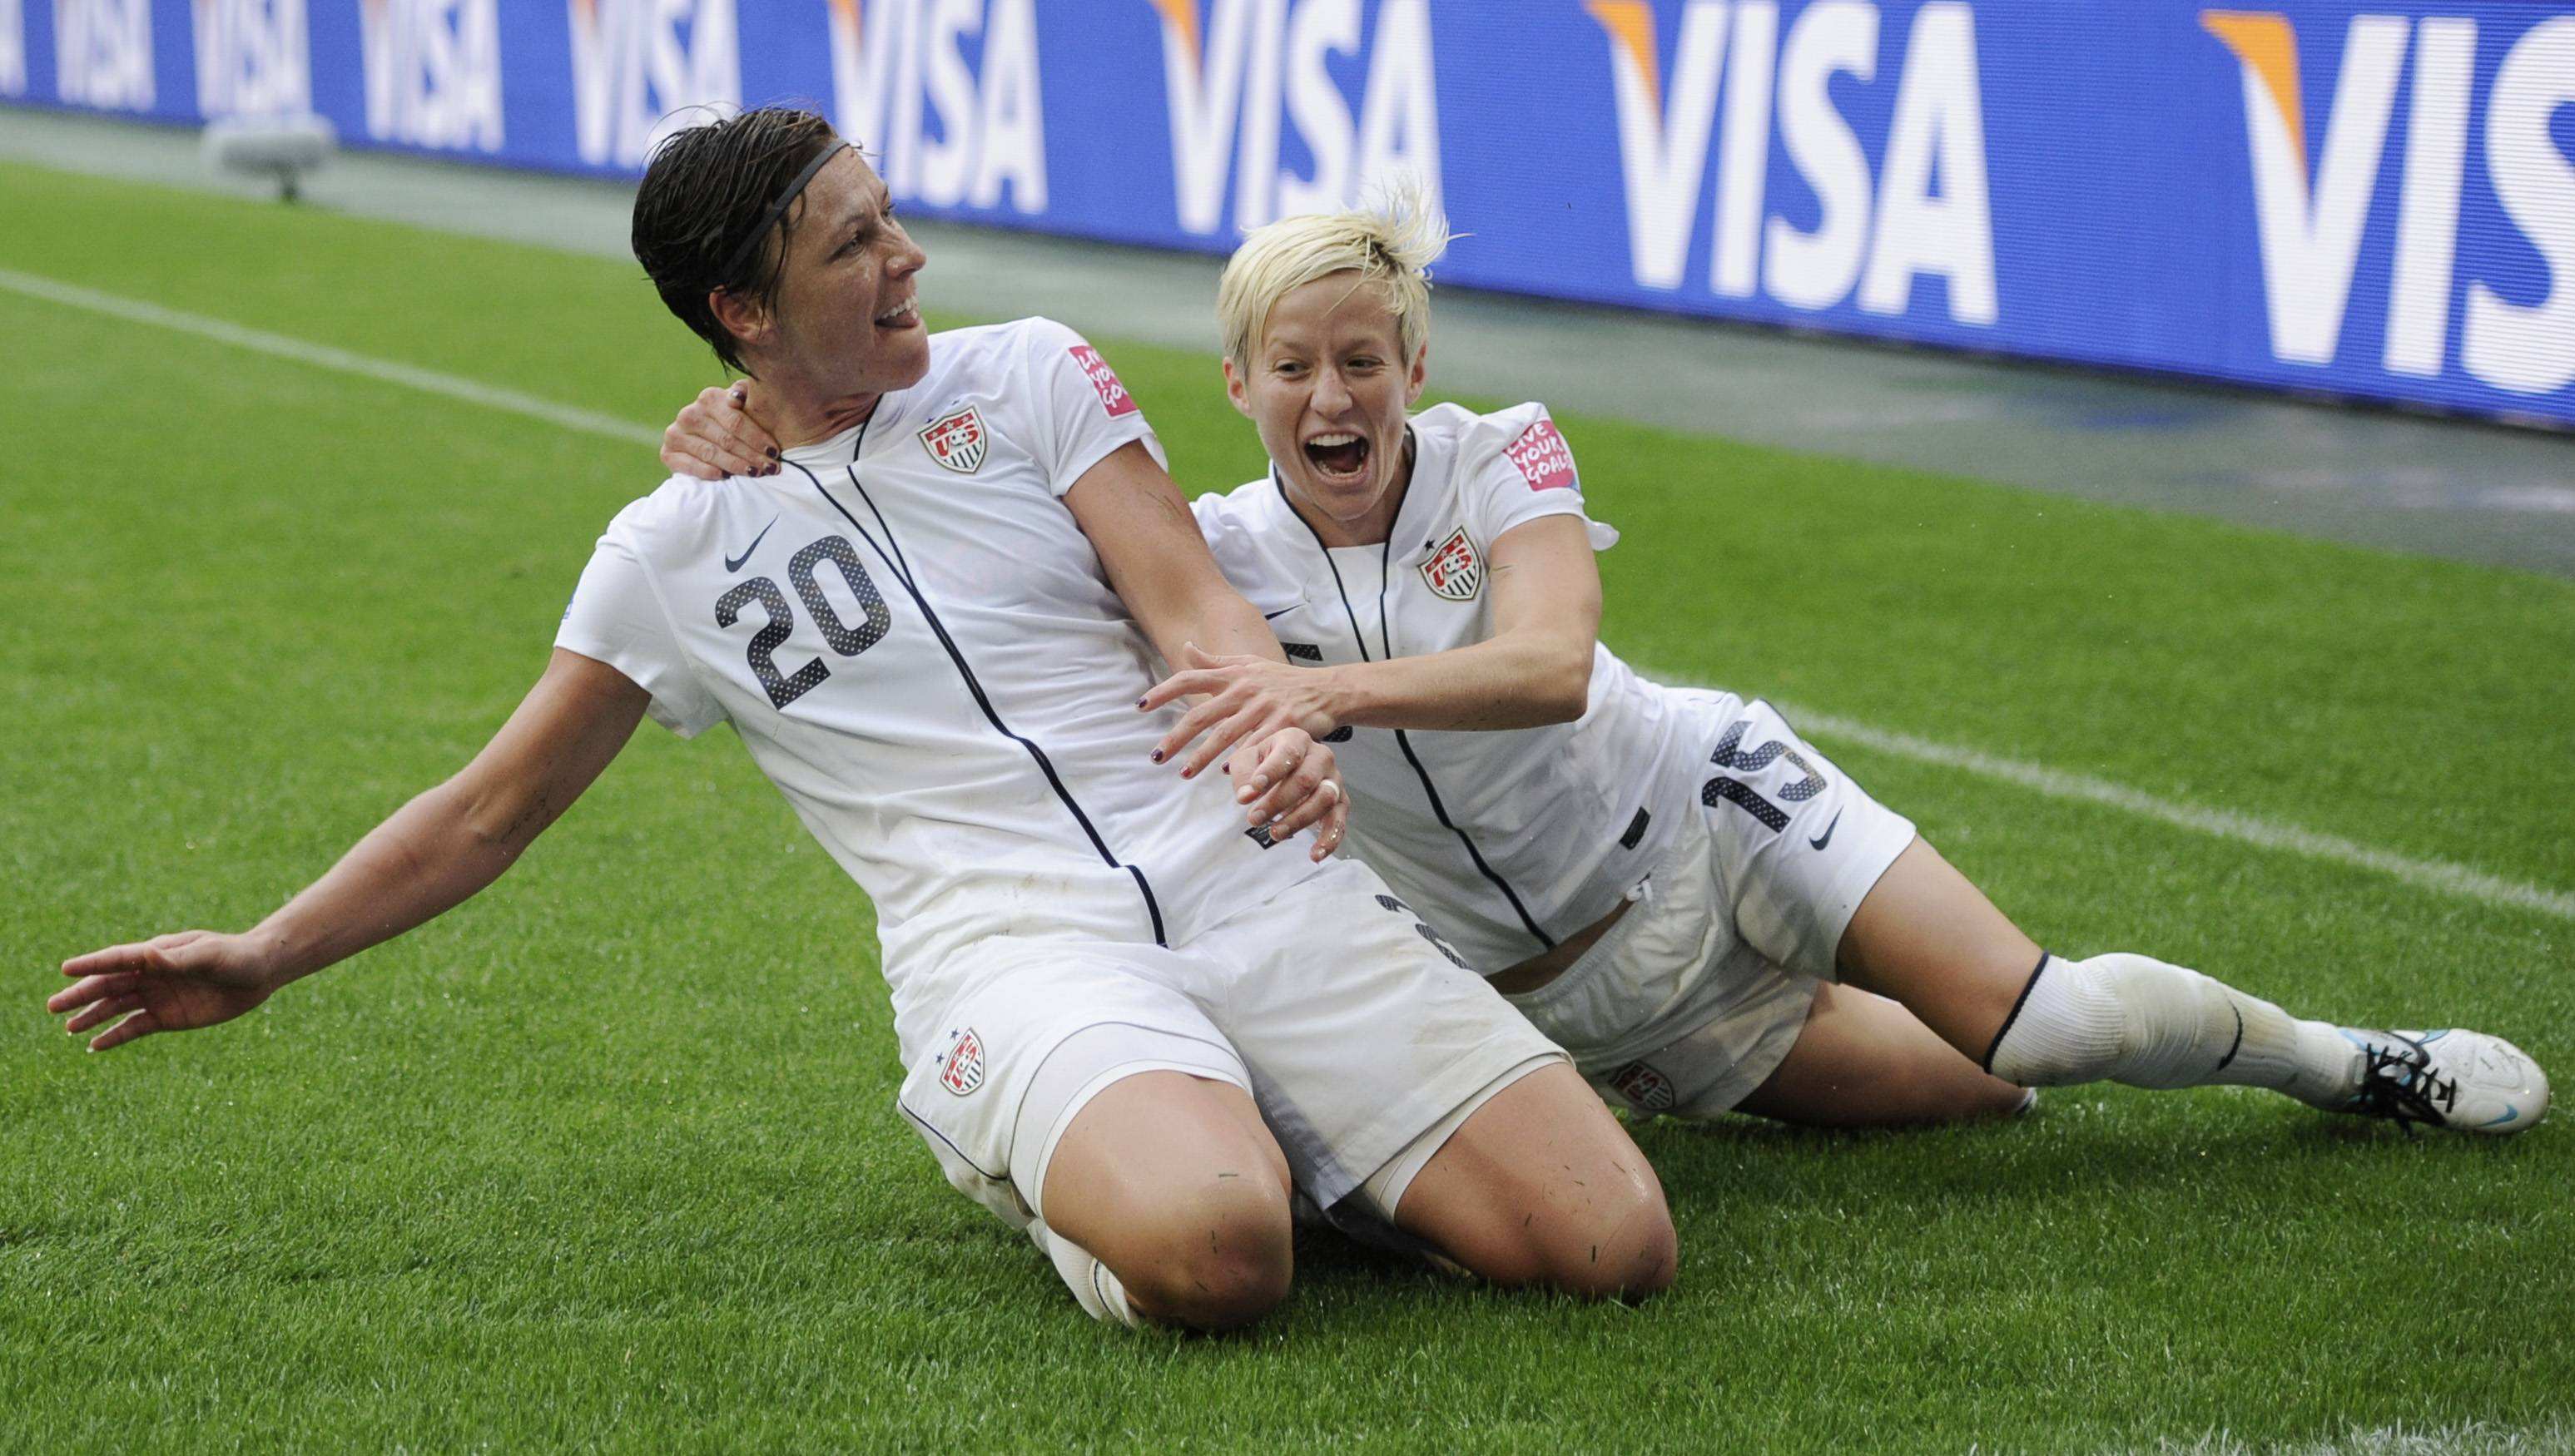 Abby Wambach celebrates with Megan Rapinoe after scoring her second goal Wednesday during the semifinal match between France and the United States at the Women's Soccer World Cup in Moenchengladbach, Germany.